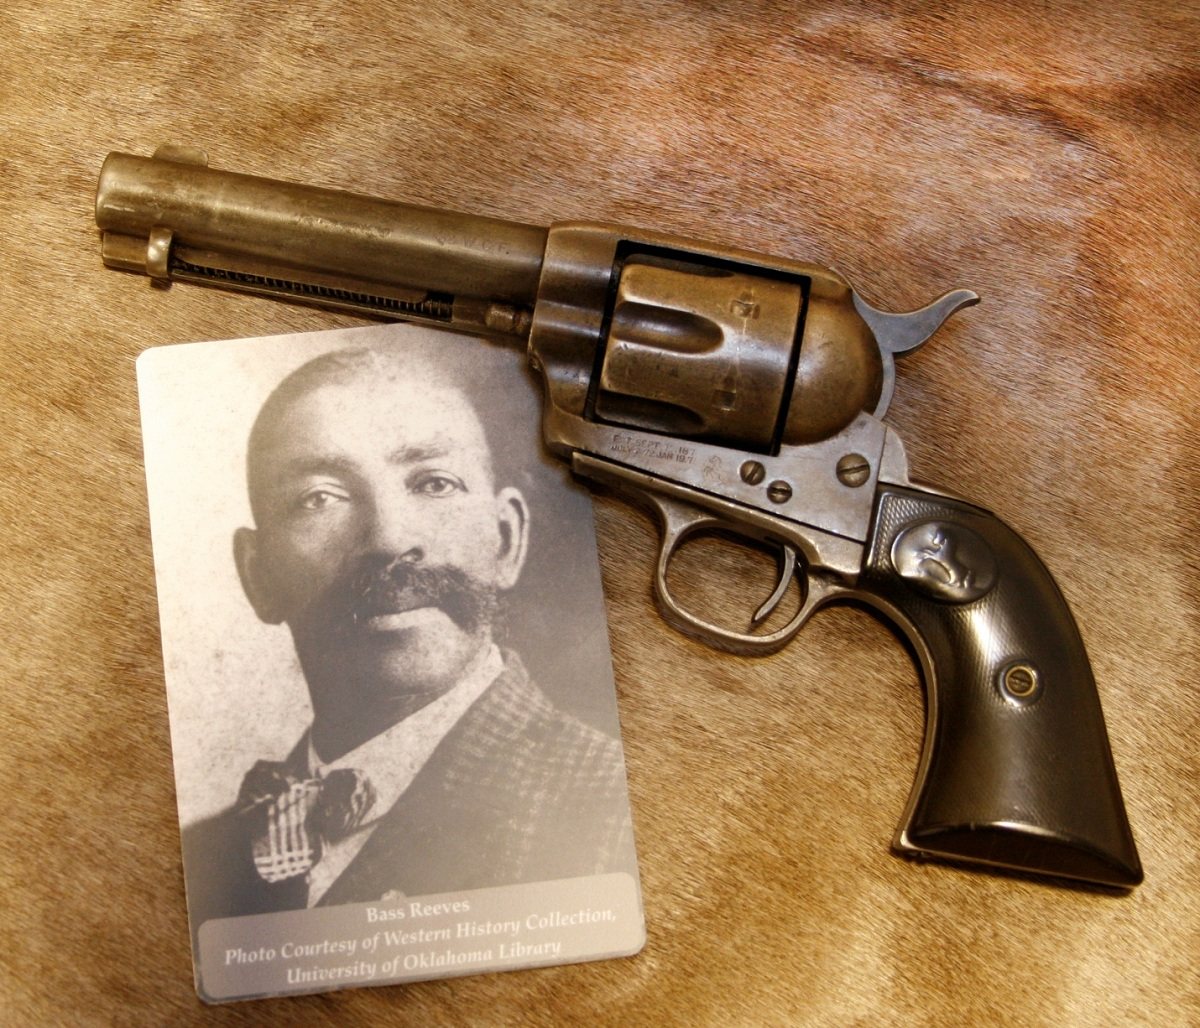 outdoorhub-4-revolvers-famous-lawmen-outlaws-old-west-2015-04-17_20-23-58.jpg